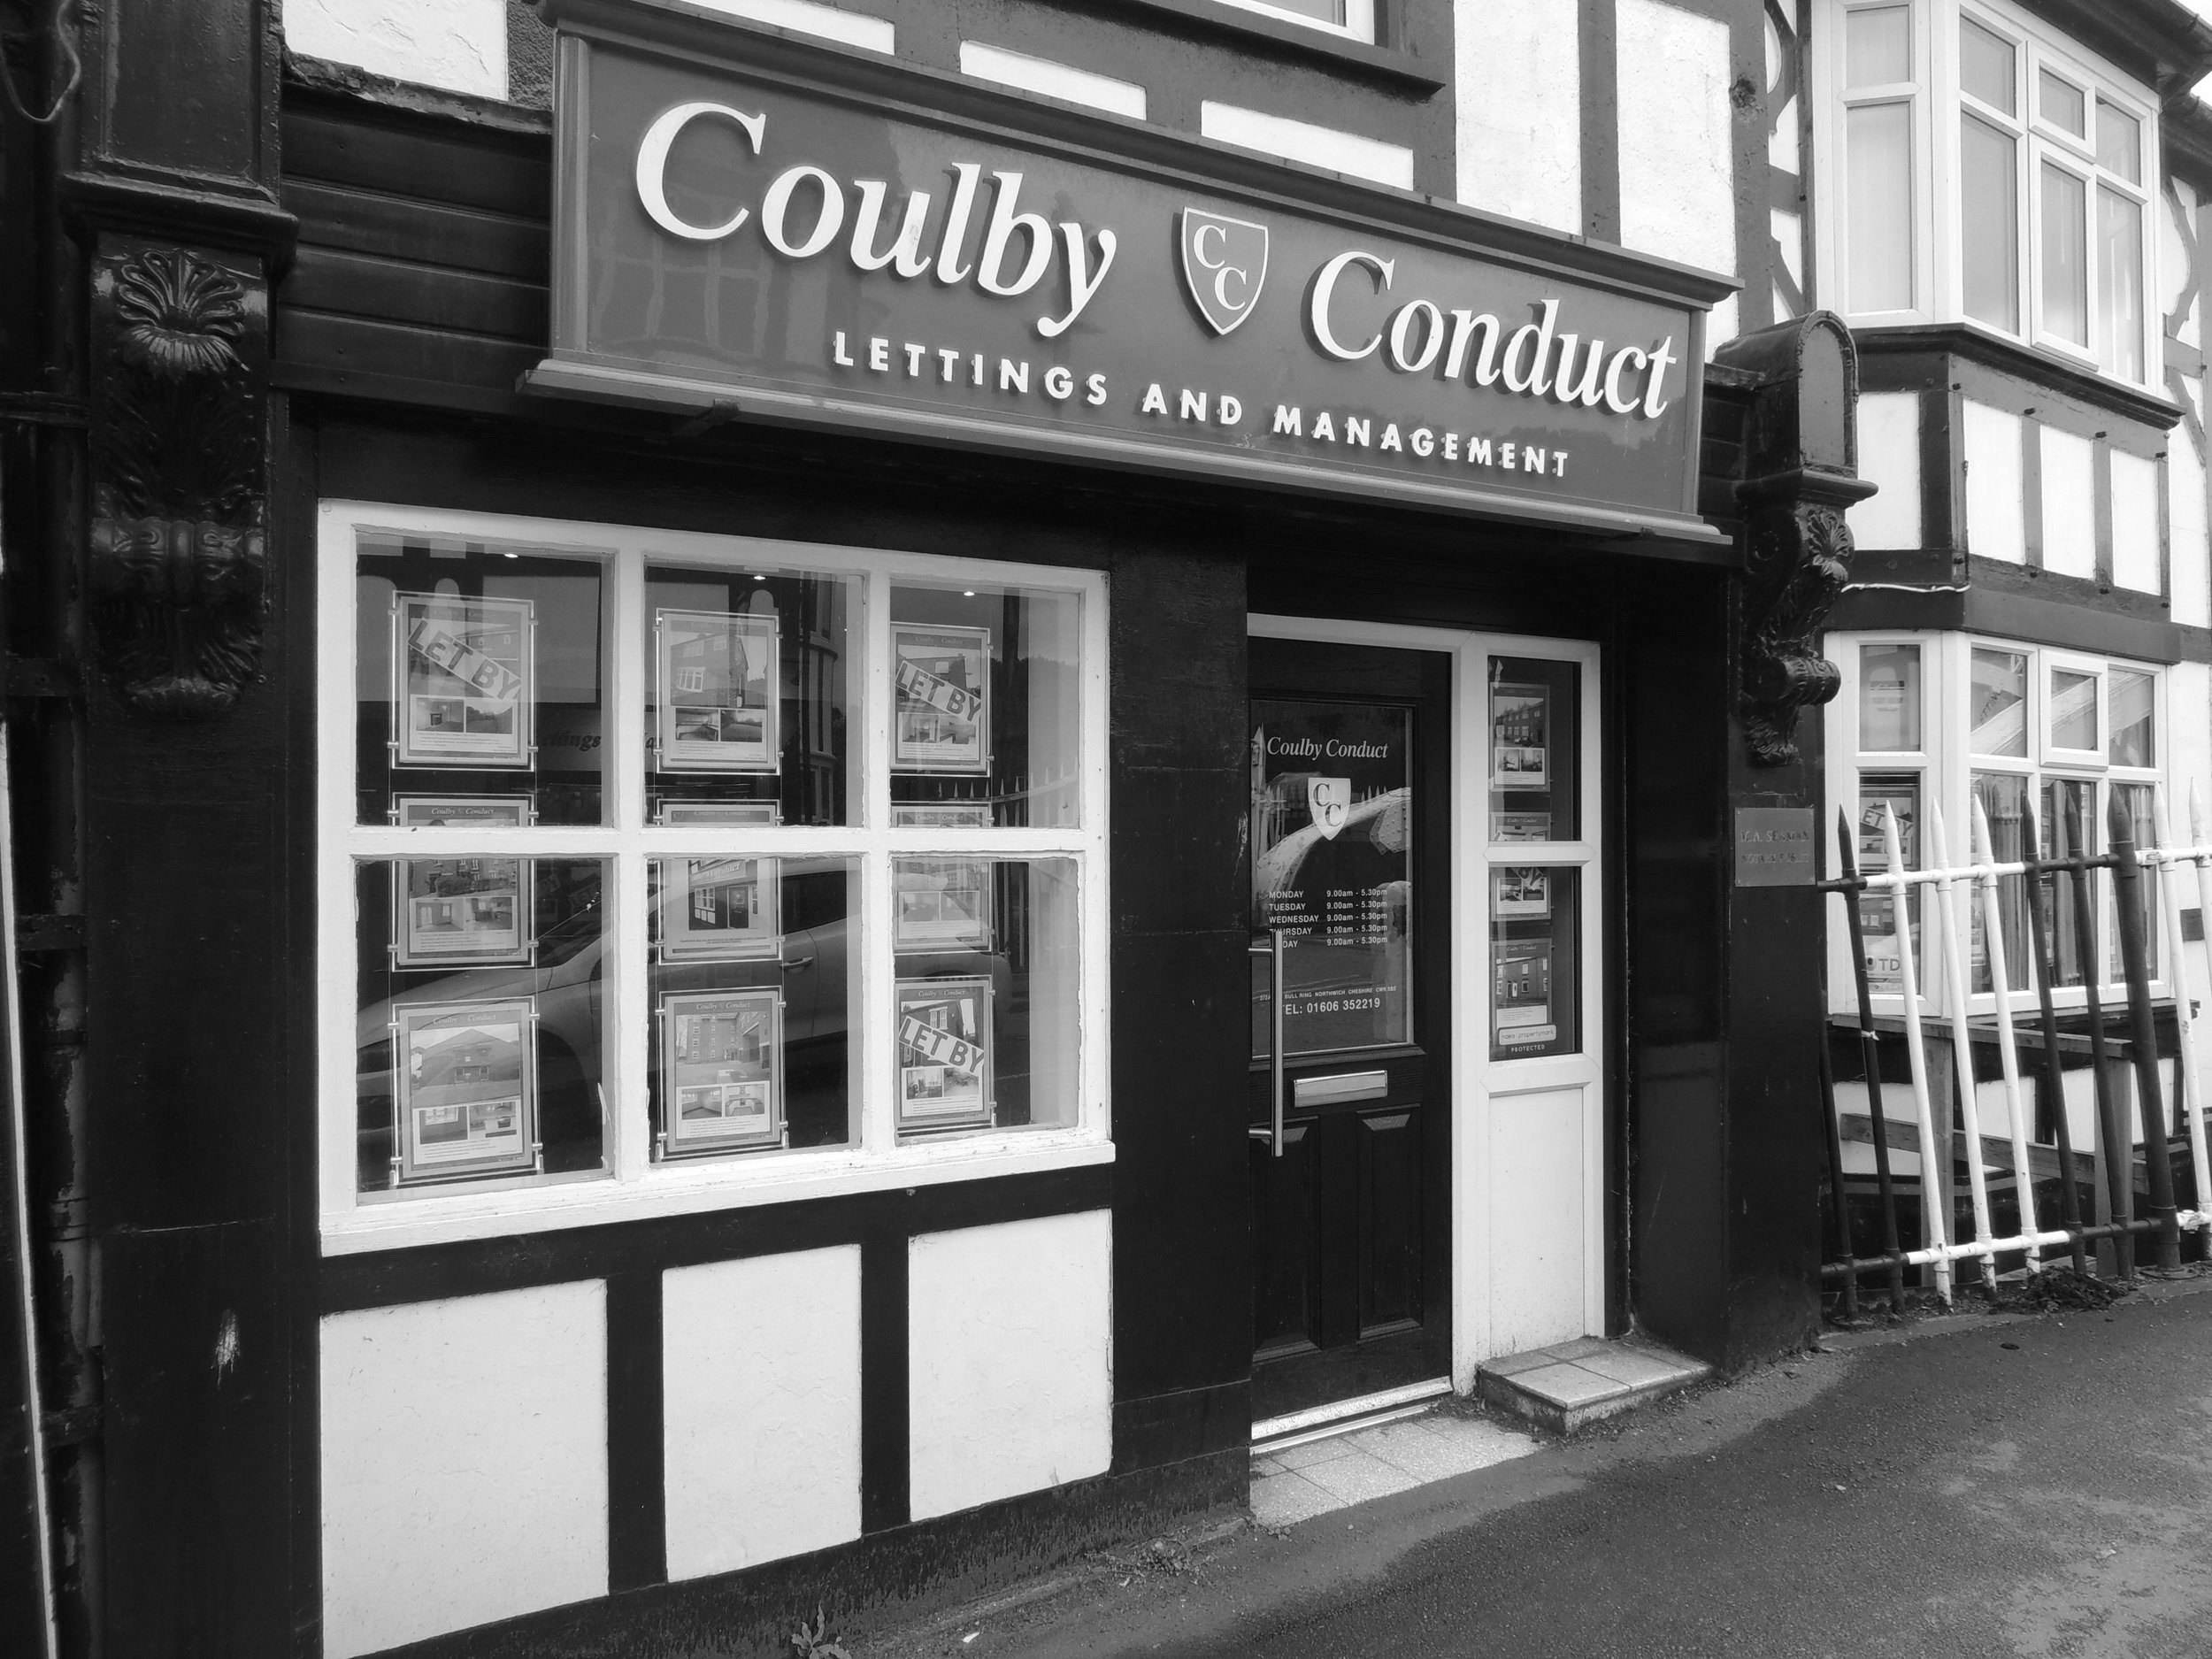 Coulby Conduct Lettings & Management - Coulby Conduct offer a complete end to end service from the initial marketing appraisal right through to the management of your property. With Coulby Conduct Lettings and Management you can be assured that we will endeavor to provide you with a service second to none.Lettings fees start from as little as £199 +vat.